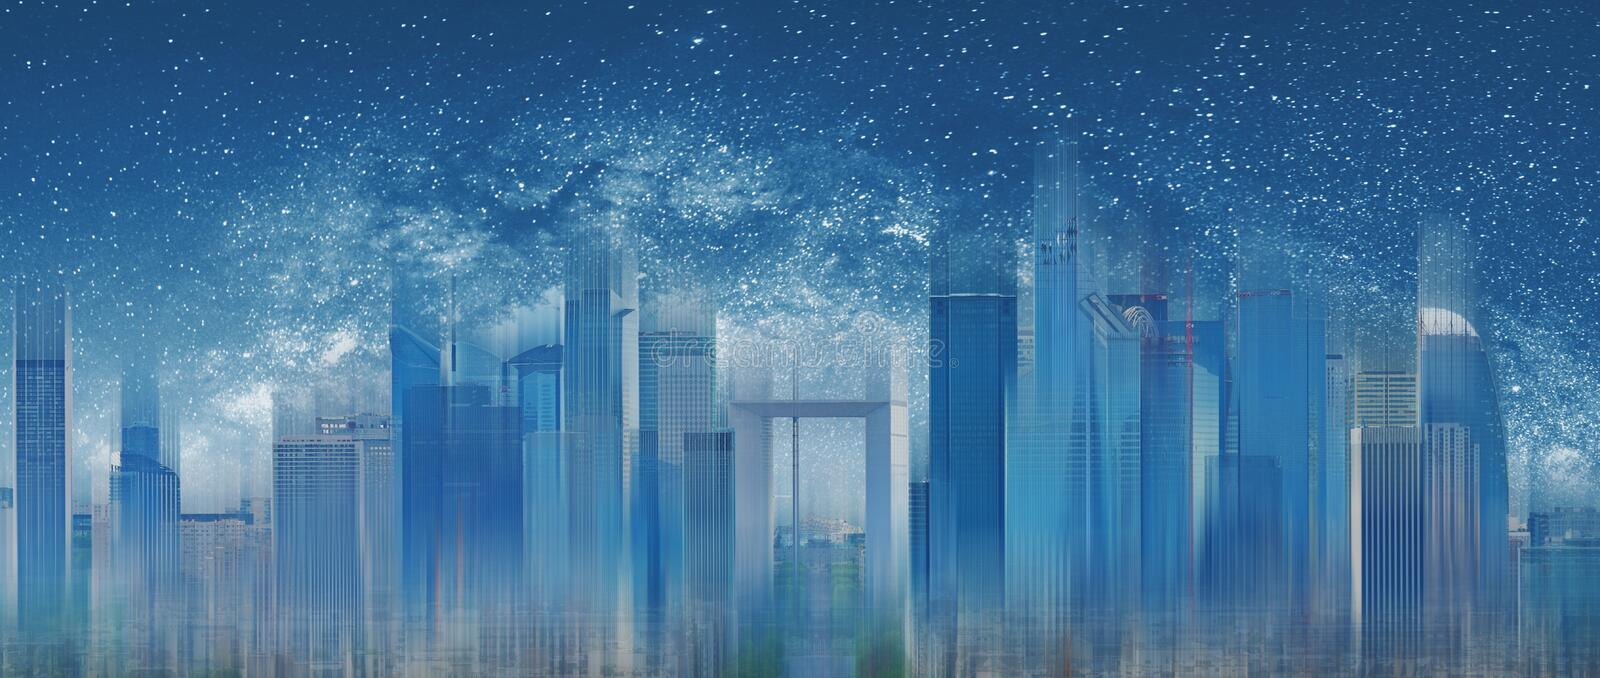 Futuristic city at night with starry sky background. Abstract modern blue building background stock photos